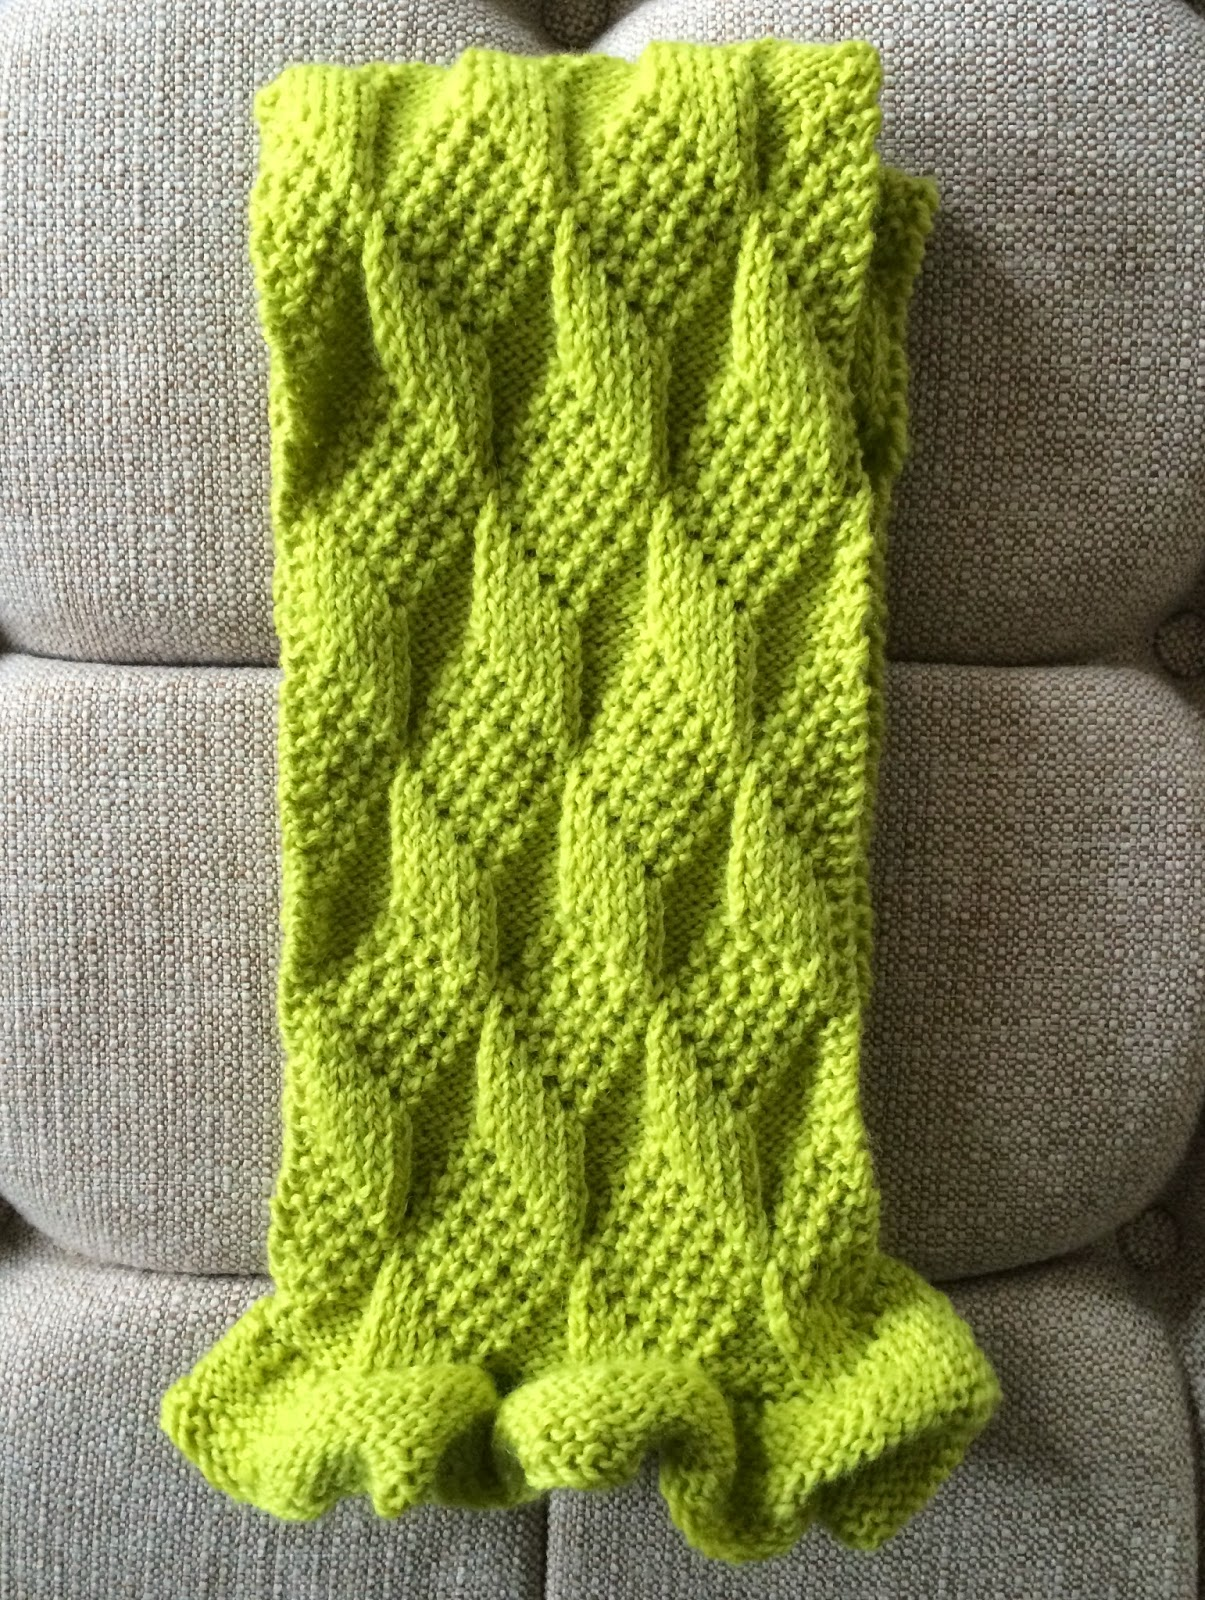 Ruffle Scarf Knitting Pattern Easy : Librarian Tells All: Fresh off the Knitting Needles: Diamonds and Ruffles Sca...